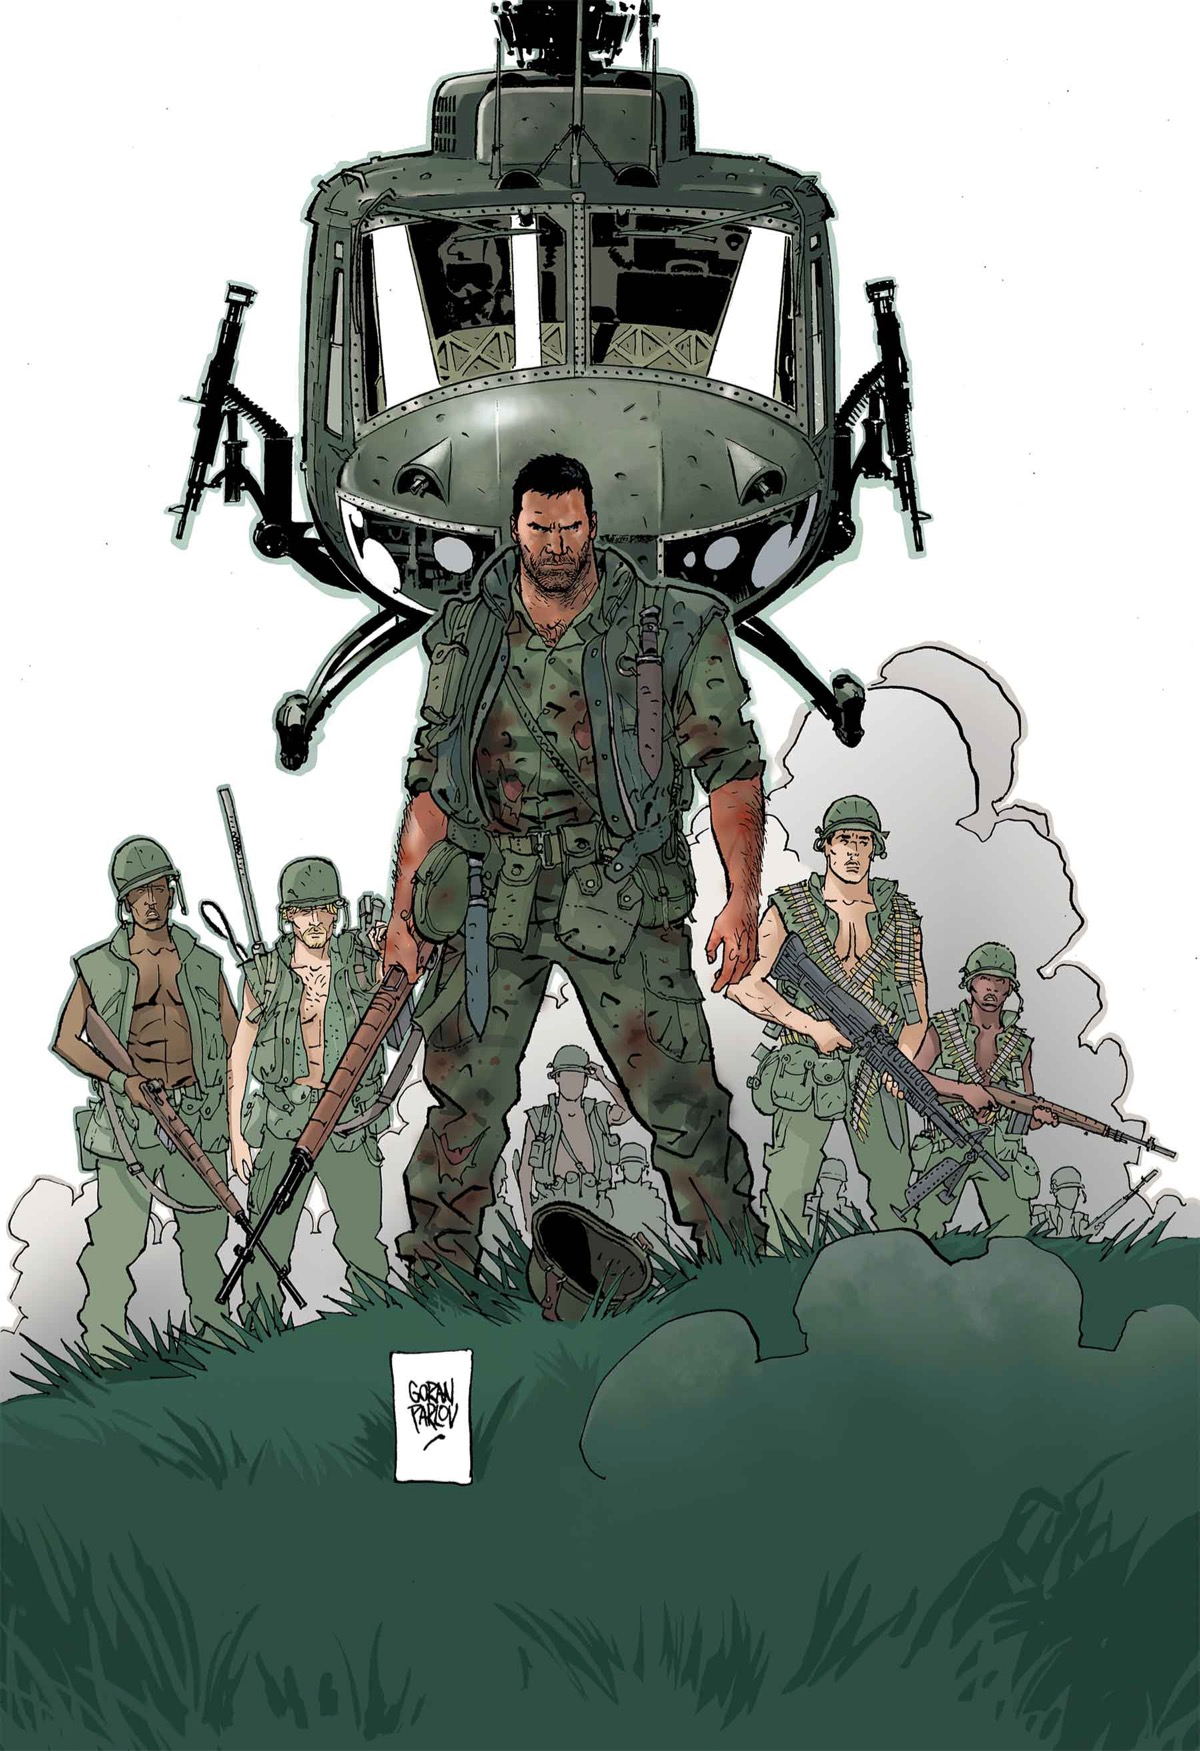 PUNISHER: THE PLATOON #6 (of 6)